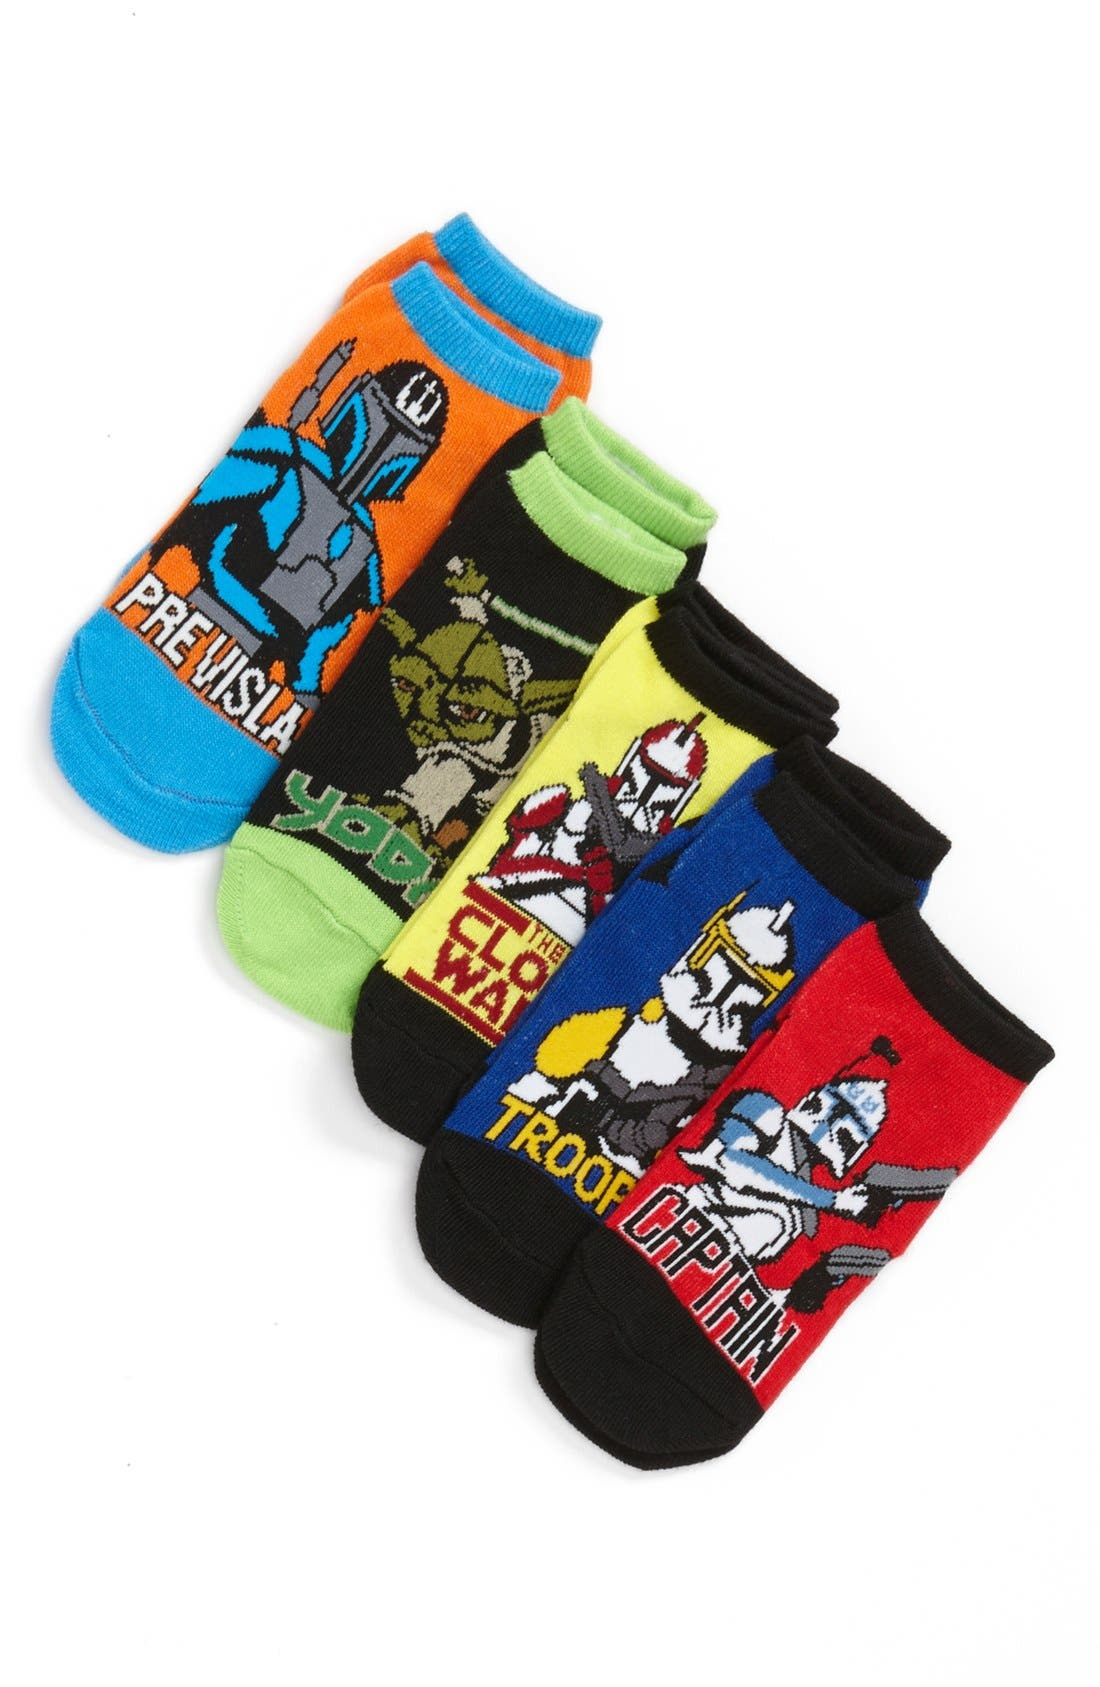 Main Image - Star Wars 'Clone Wars' Socks (Assorted 5-Pack) (Toddler Boys & Little Boys)